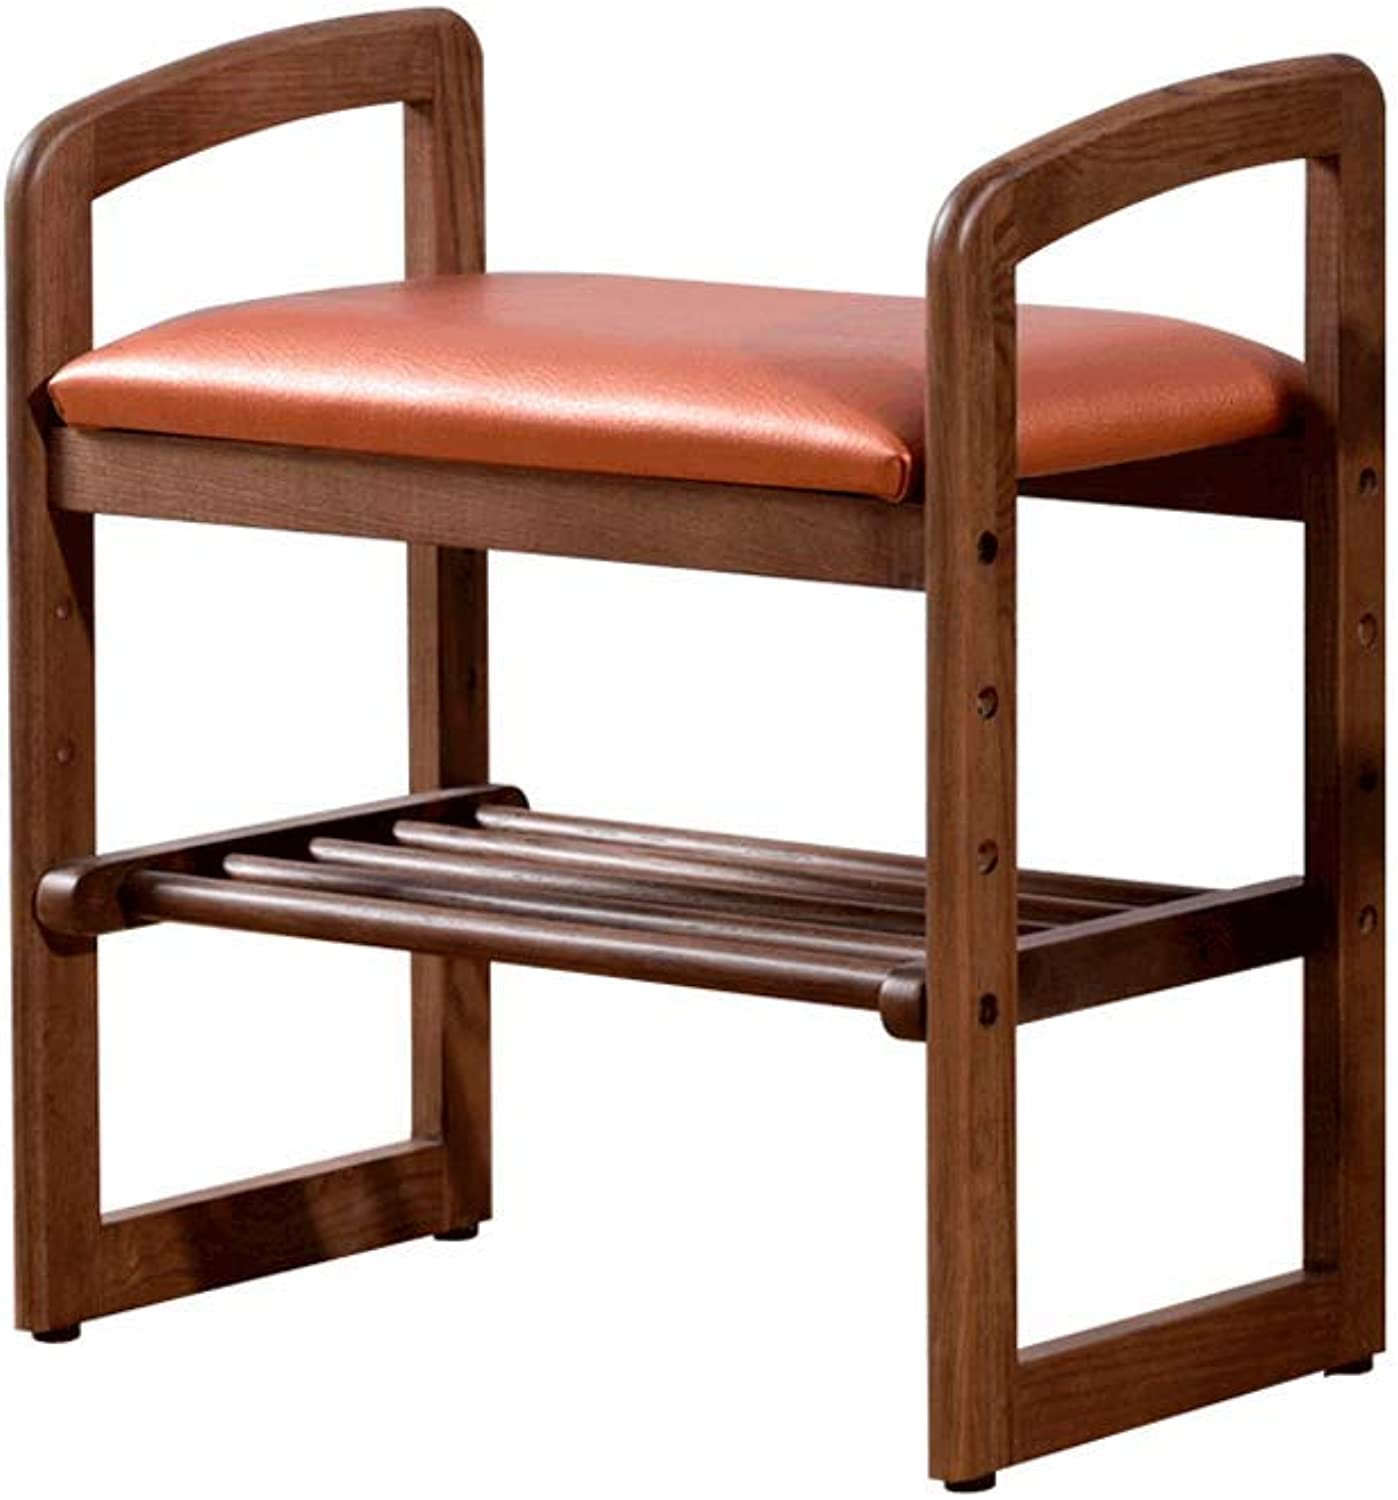 Aijl Footstool, Household Solid Wood Change shoes Bench Living Room Footstool Hall shoes Rack Wearing A shoes Bench 50  30  54cm (Brown)